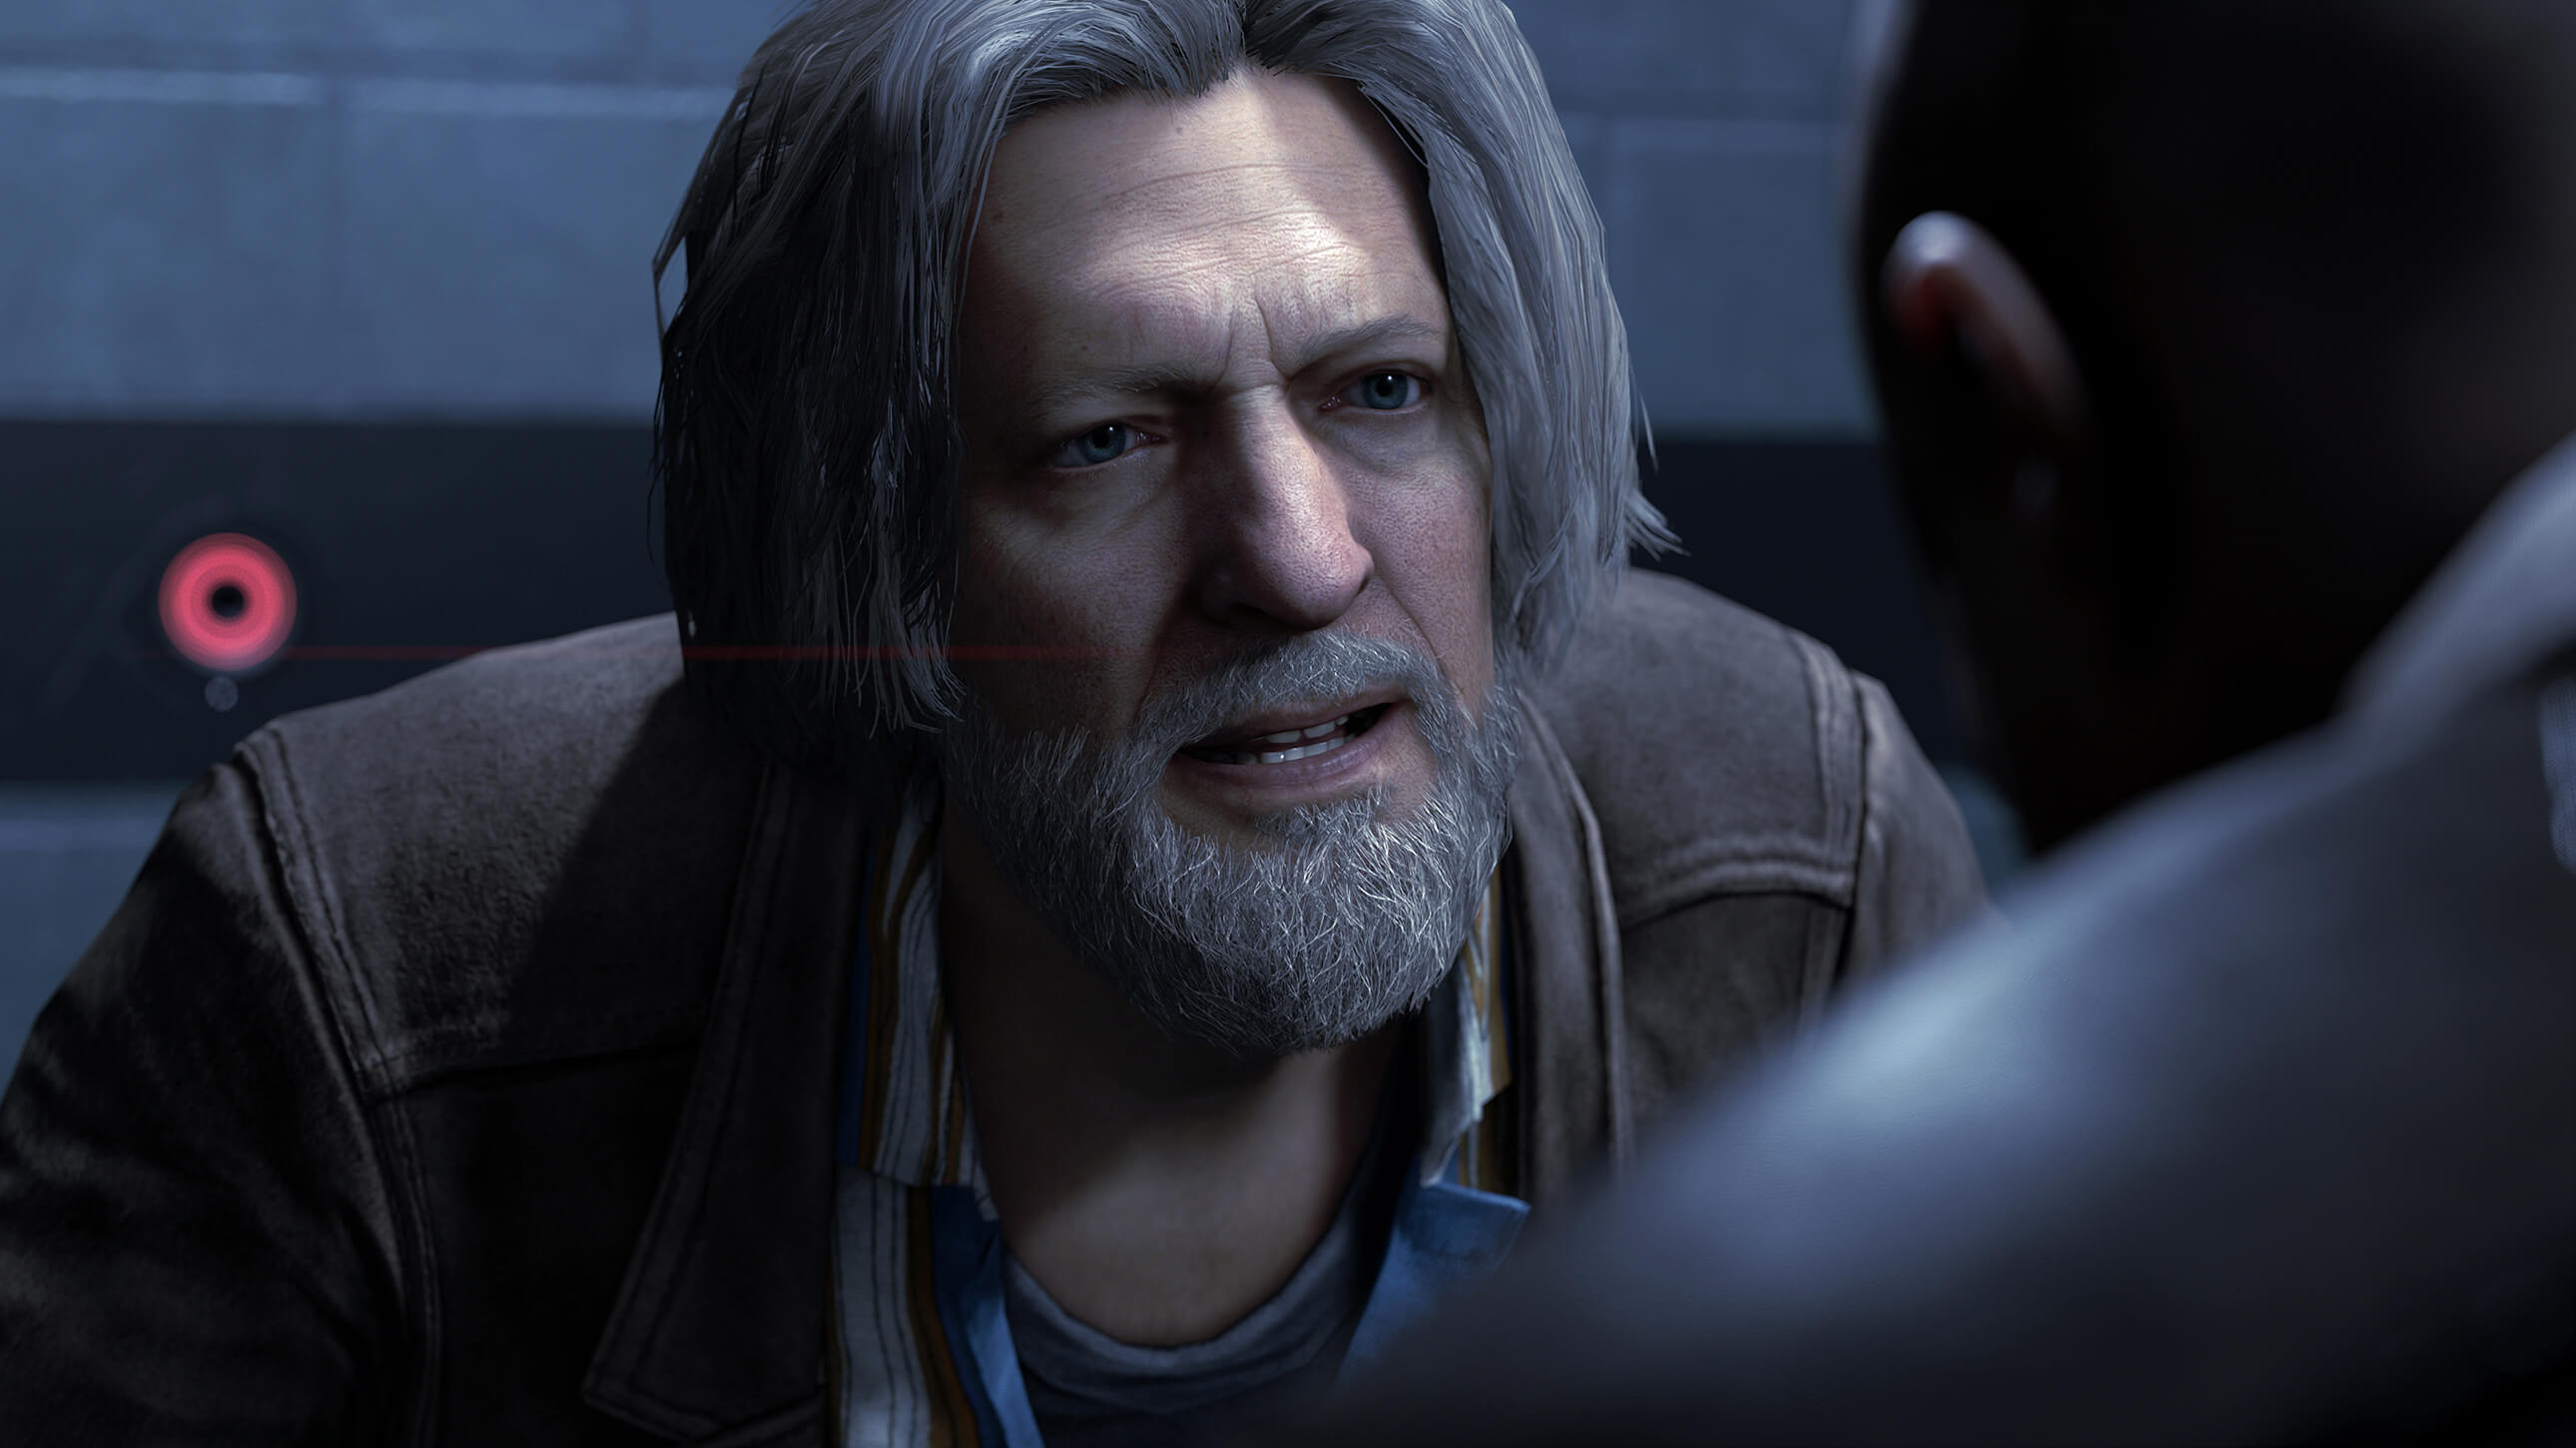 Detroit: Become Human - FREEDOM HAS A PRICE